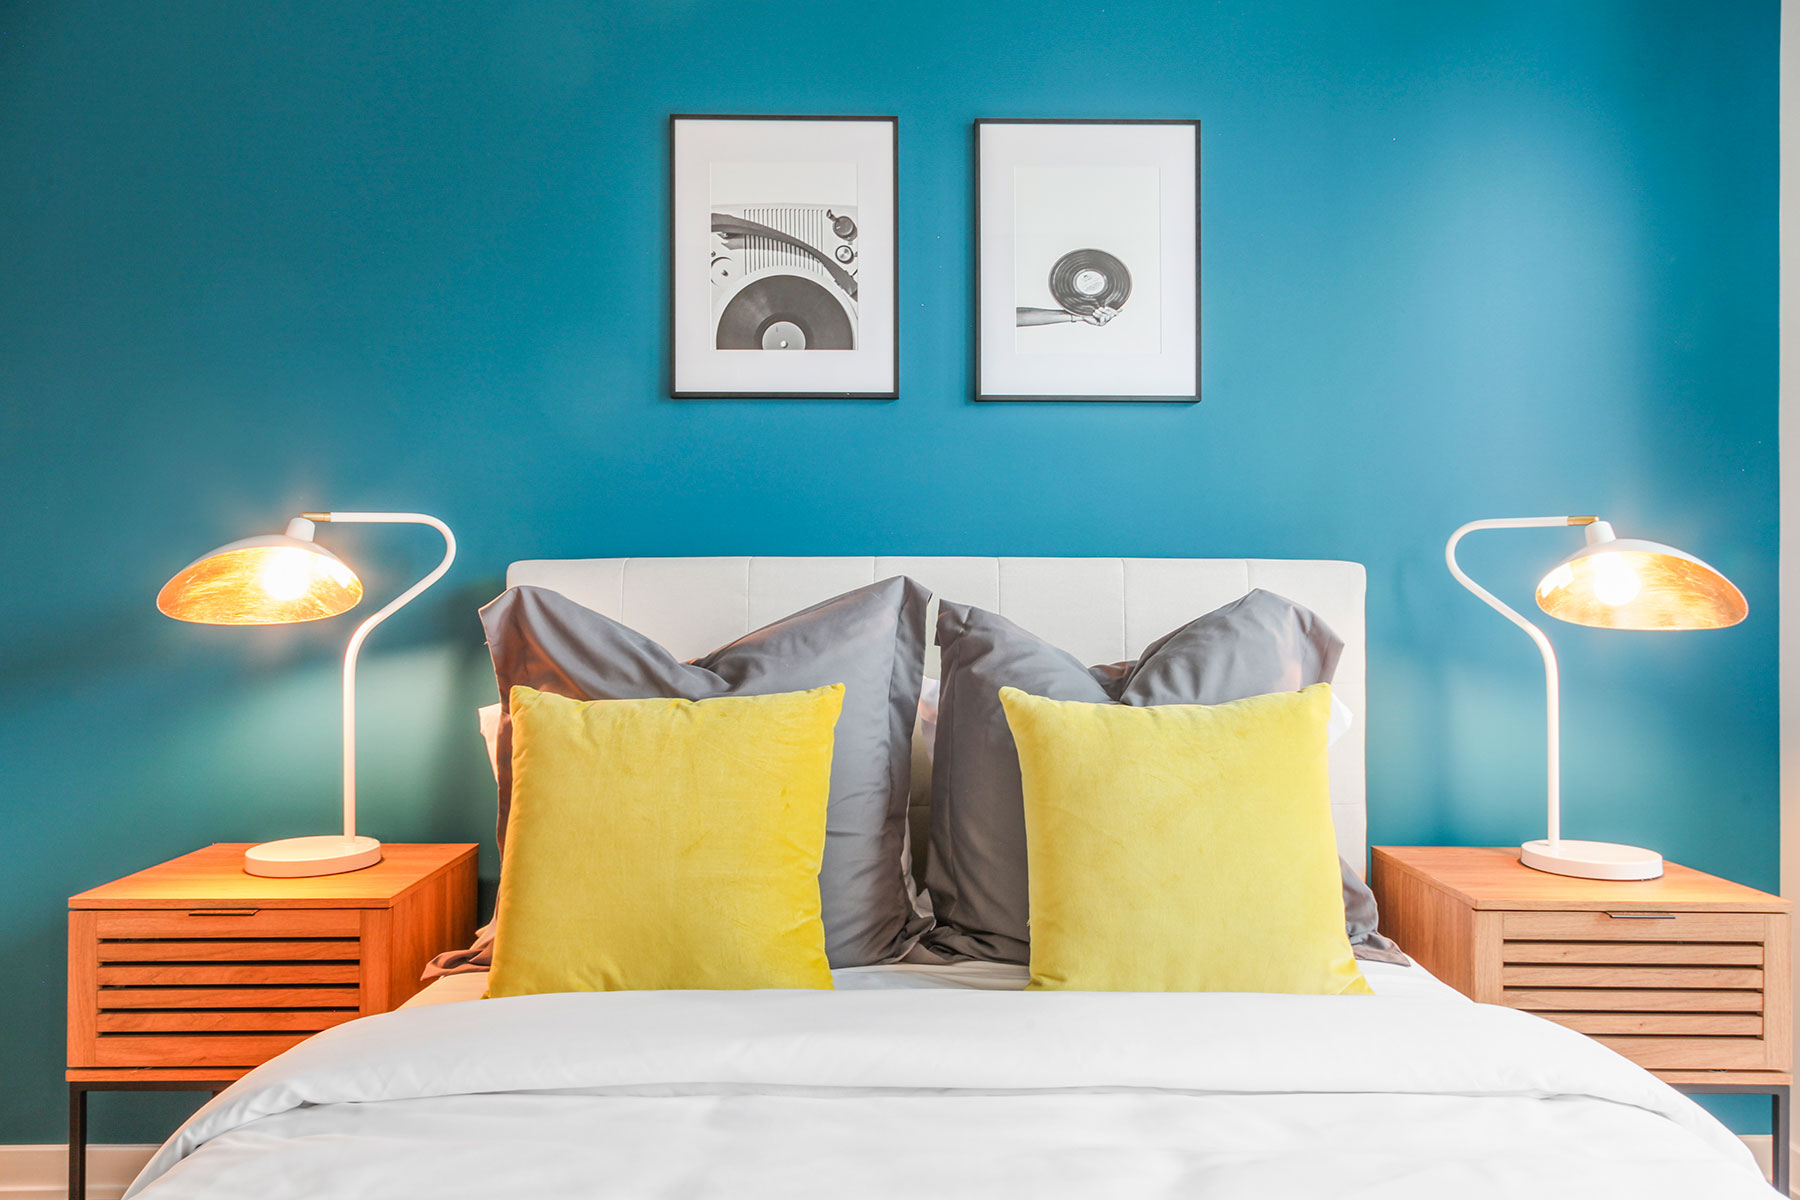 Detail of bed with modern bedding, accent pillows, fabric headboard, teal accent wall with framed art, matching wood and metal nighstands with lamps on each side